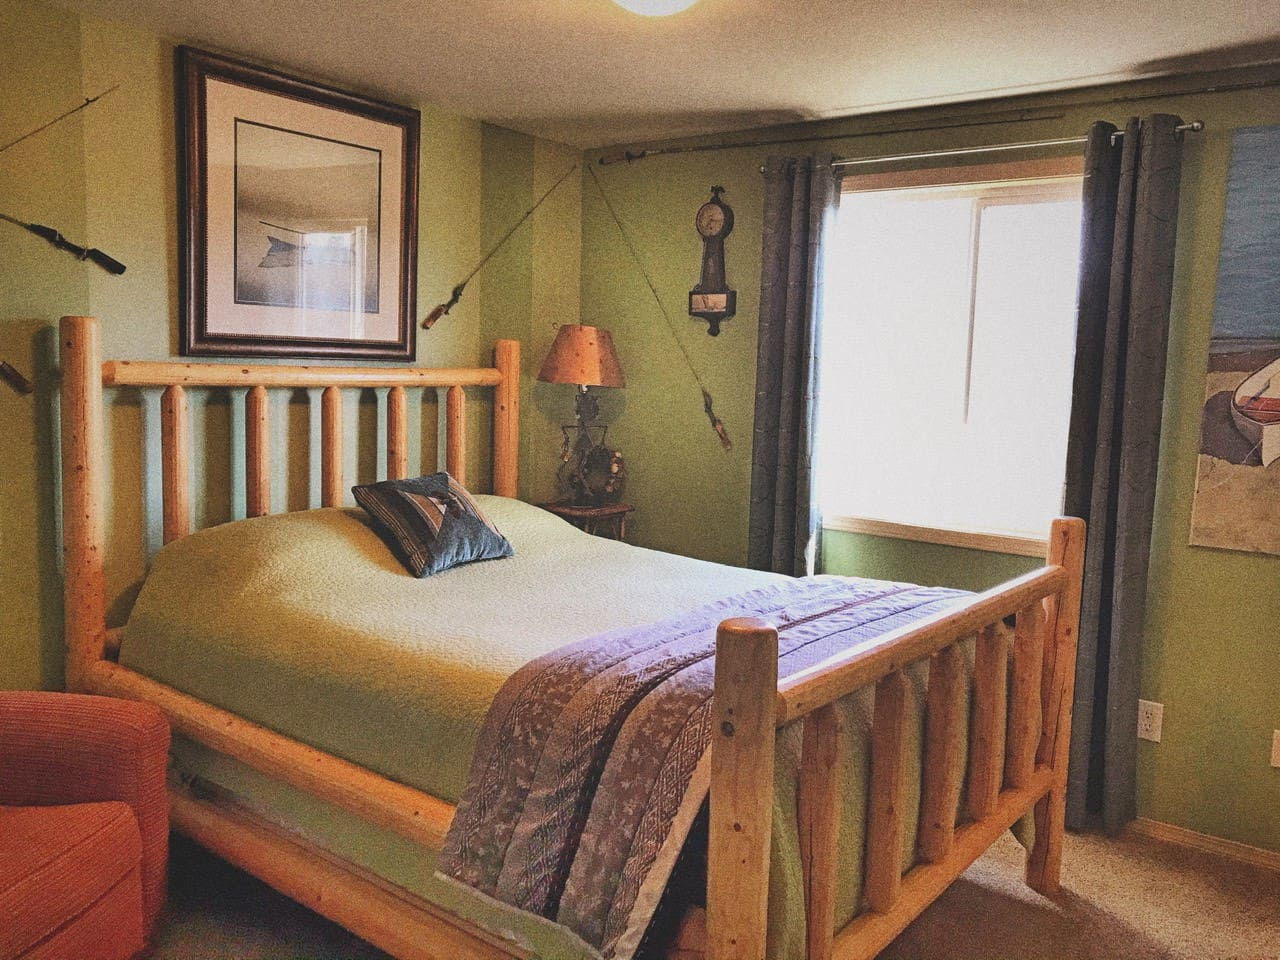 This space boasts a comfortable Queen size bed with fresh linens in a cozy room right next to your private bathroom